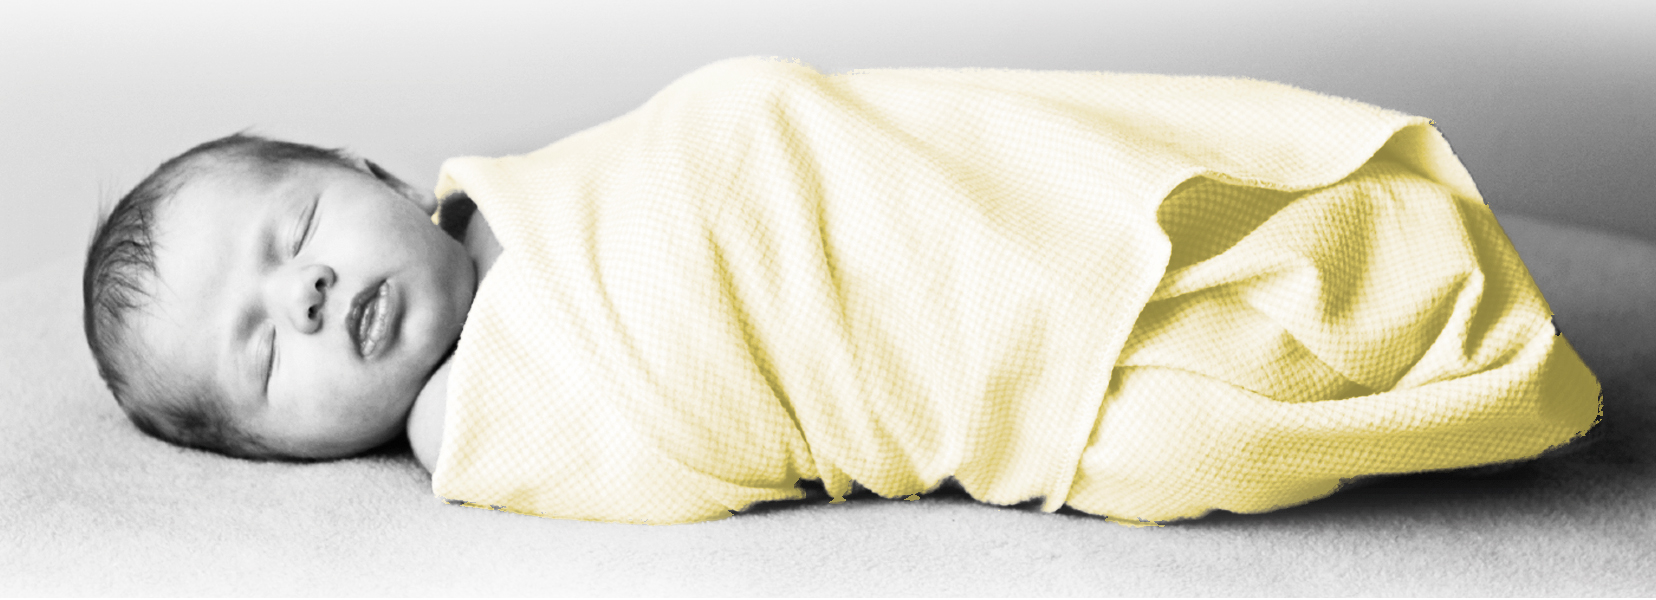 Baby_yellow_blanket